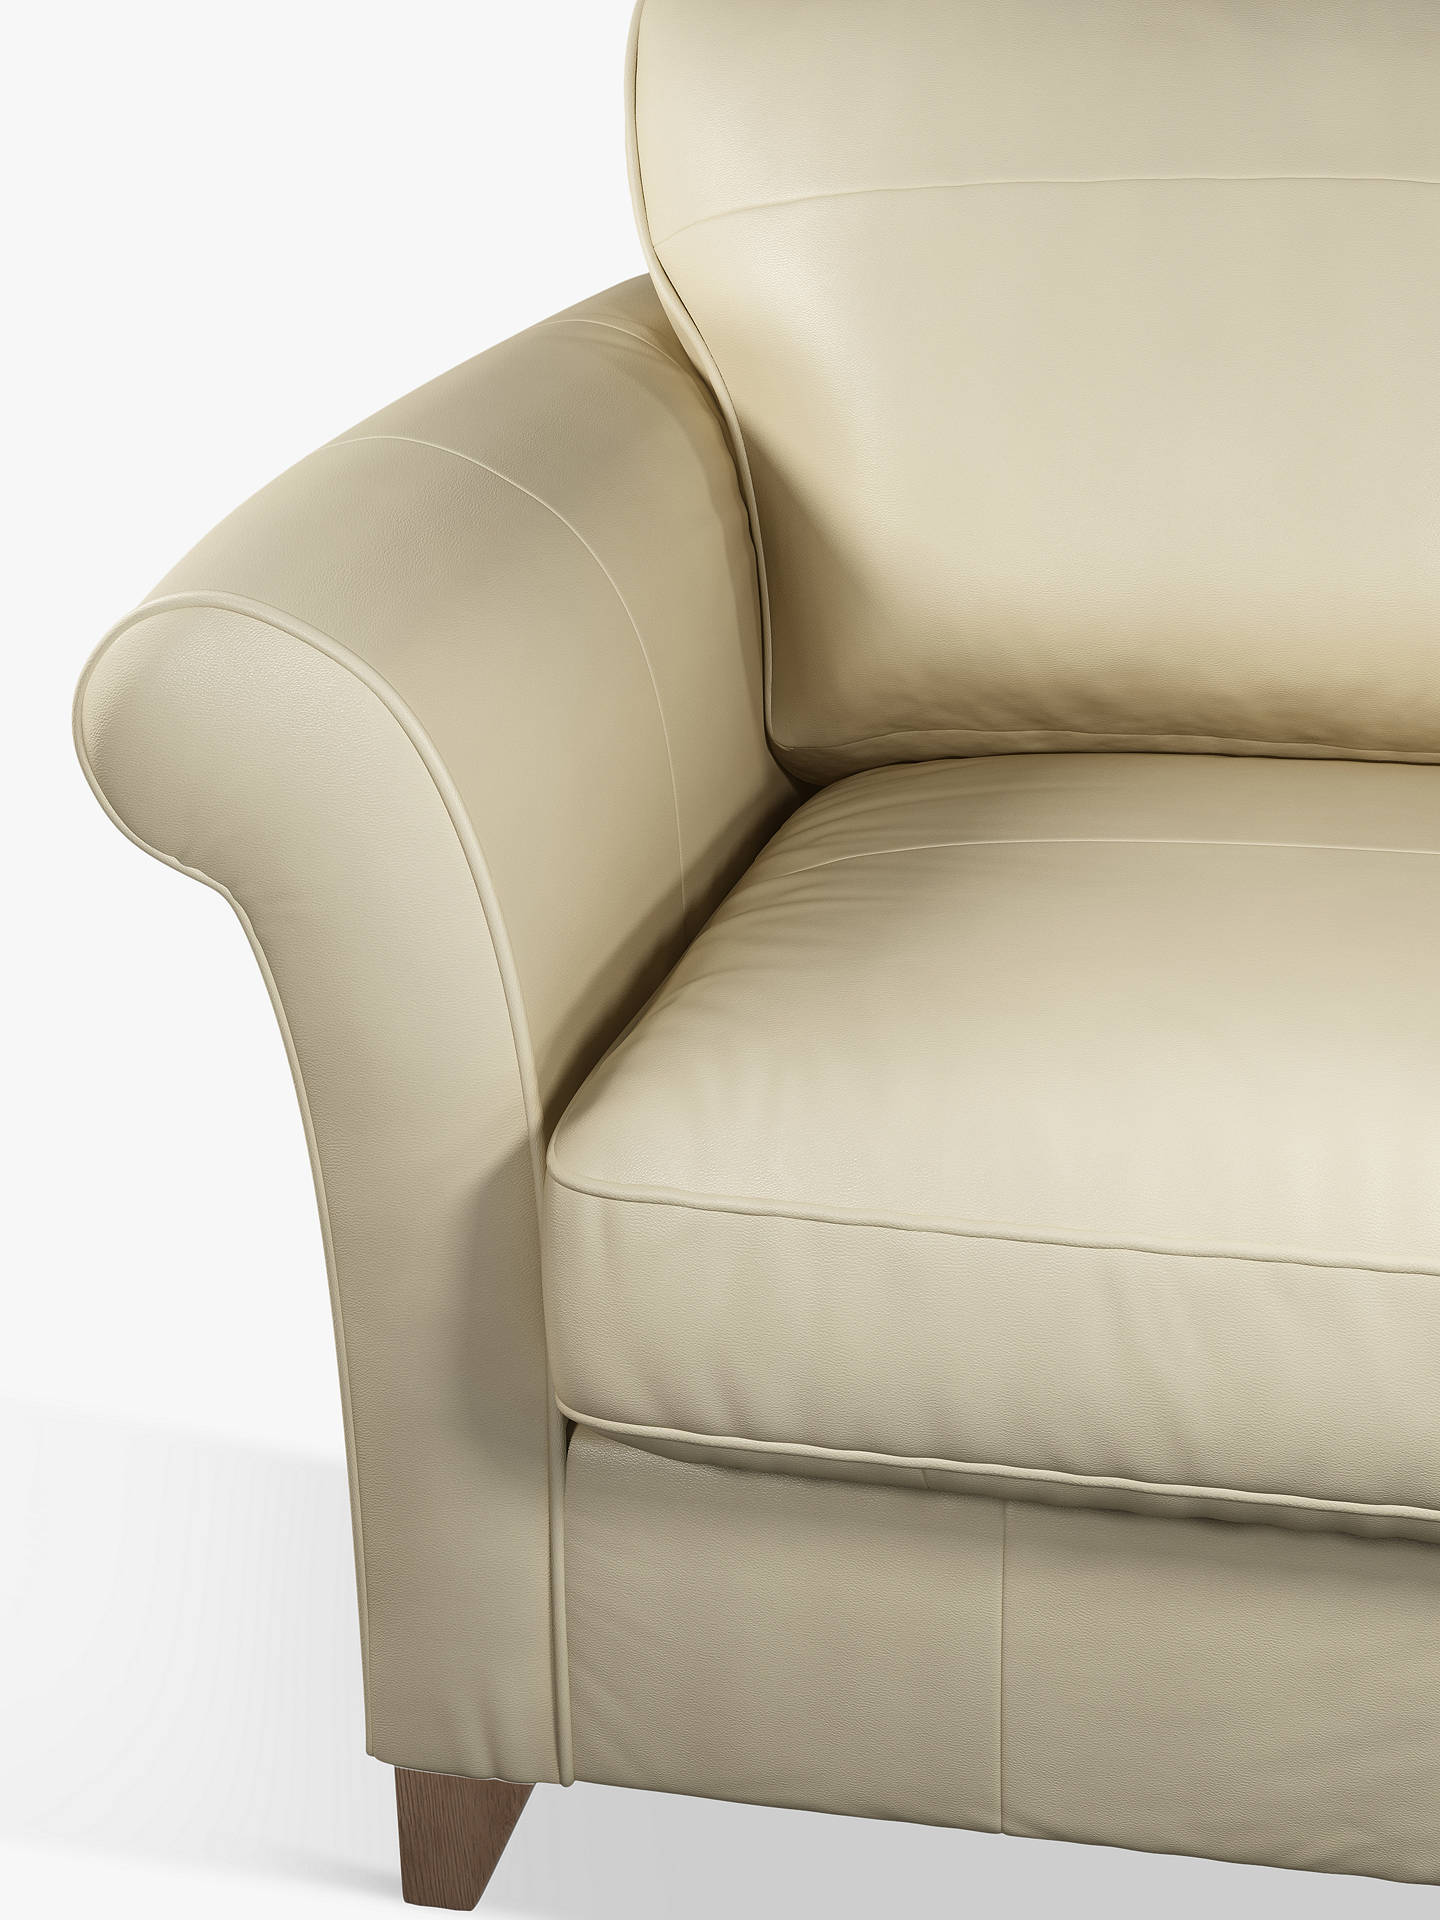 Buy John Lewis & Partners Charlotte Leather Snuggler, Dark Leg, Nature Cream Online at johnlewis.com